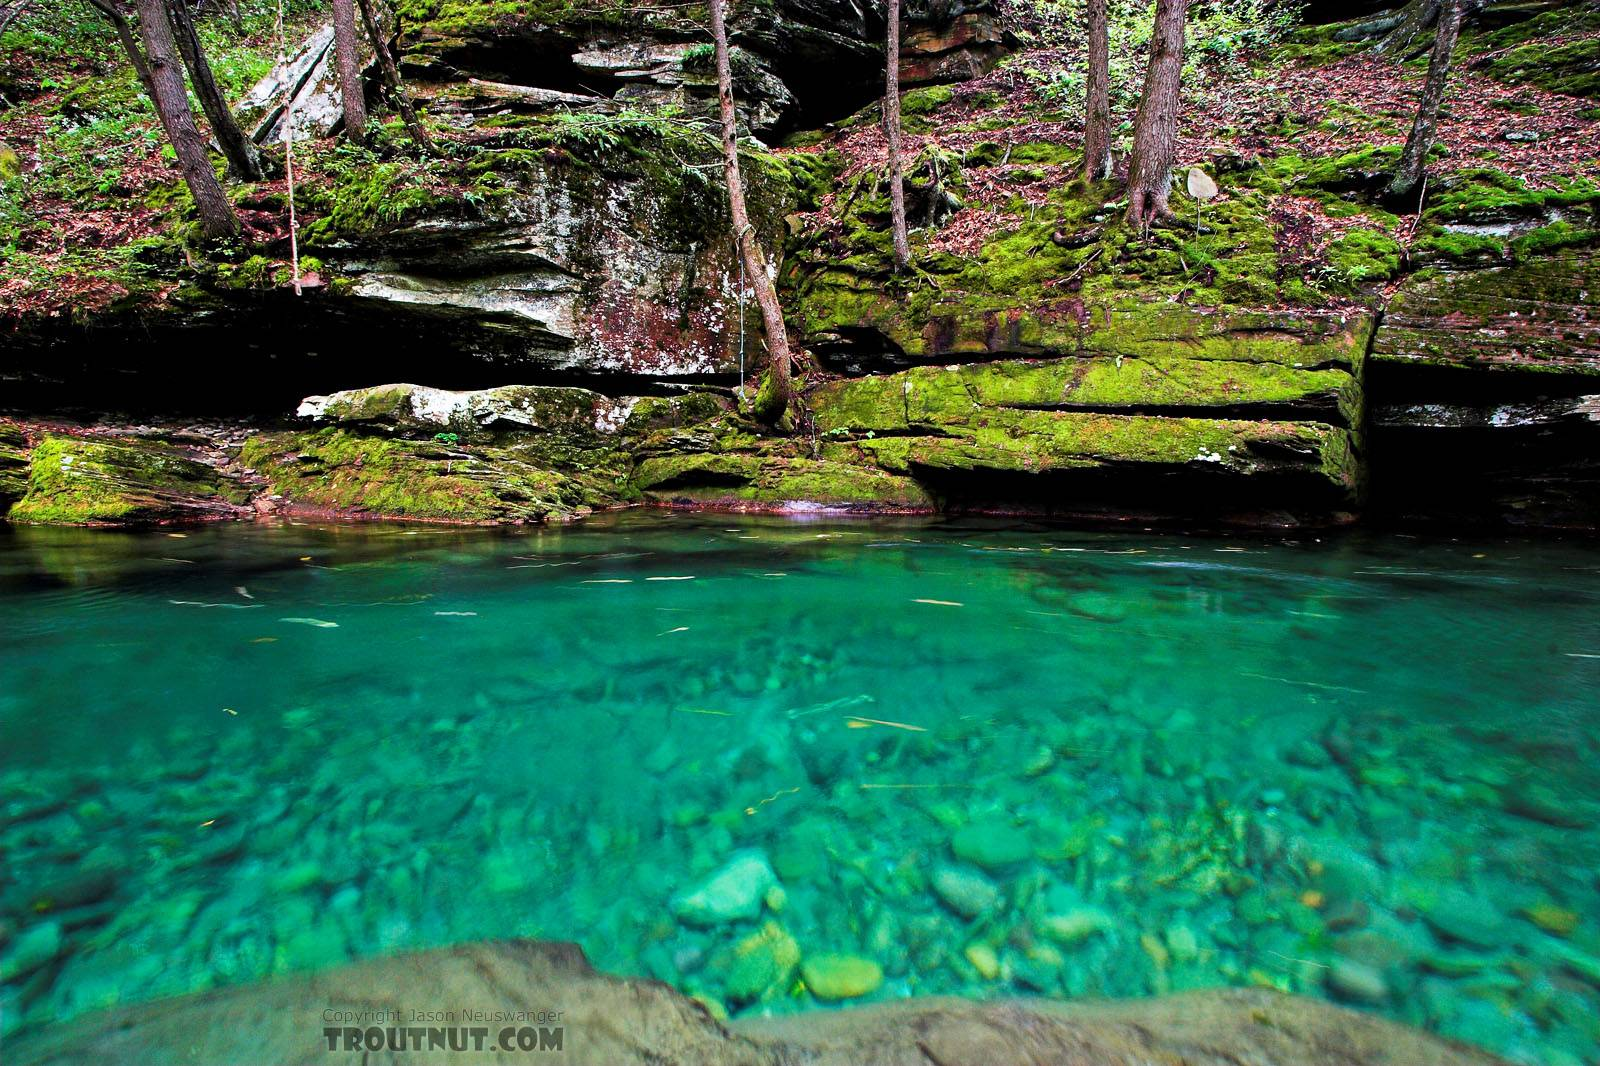 This small stream's so clear it looks like a swimming pool in this really deep spot. From Rondout Creek in New York.